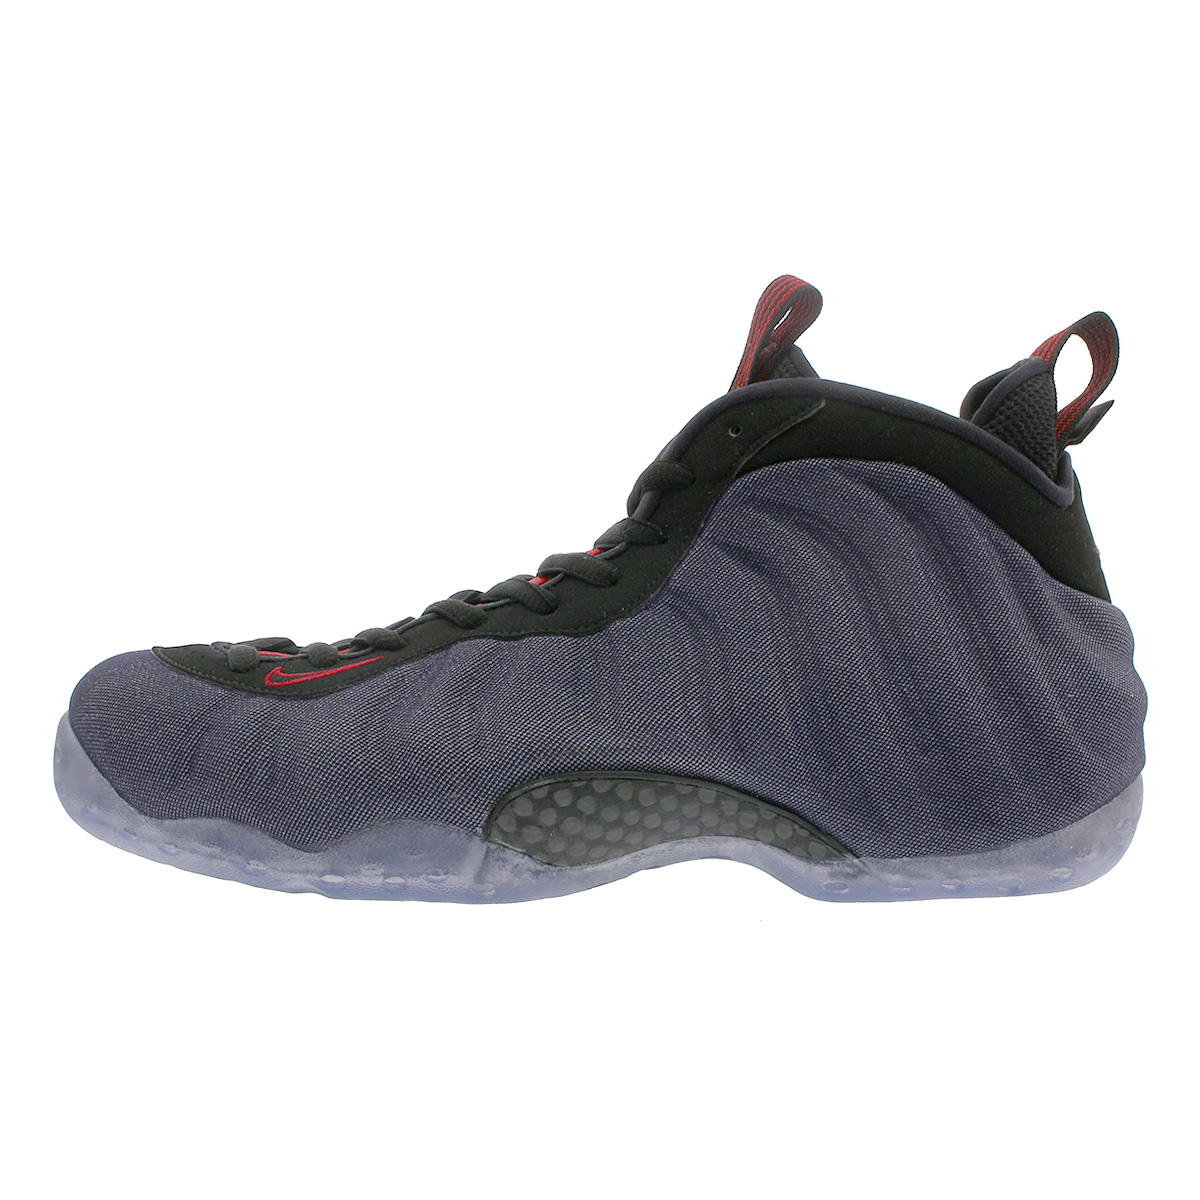 33fd007341c NIKE AIR FOAMPOSITE ONE ナイキエアフォームポジットワン OBSIDIAN BLACK UNIVERSITY RED  314